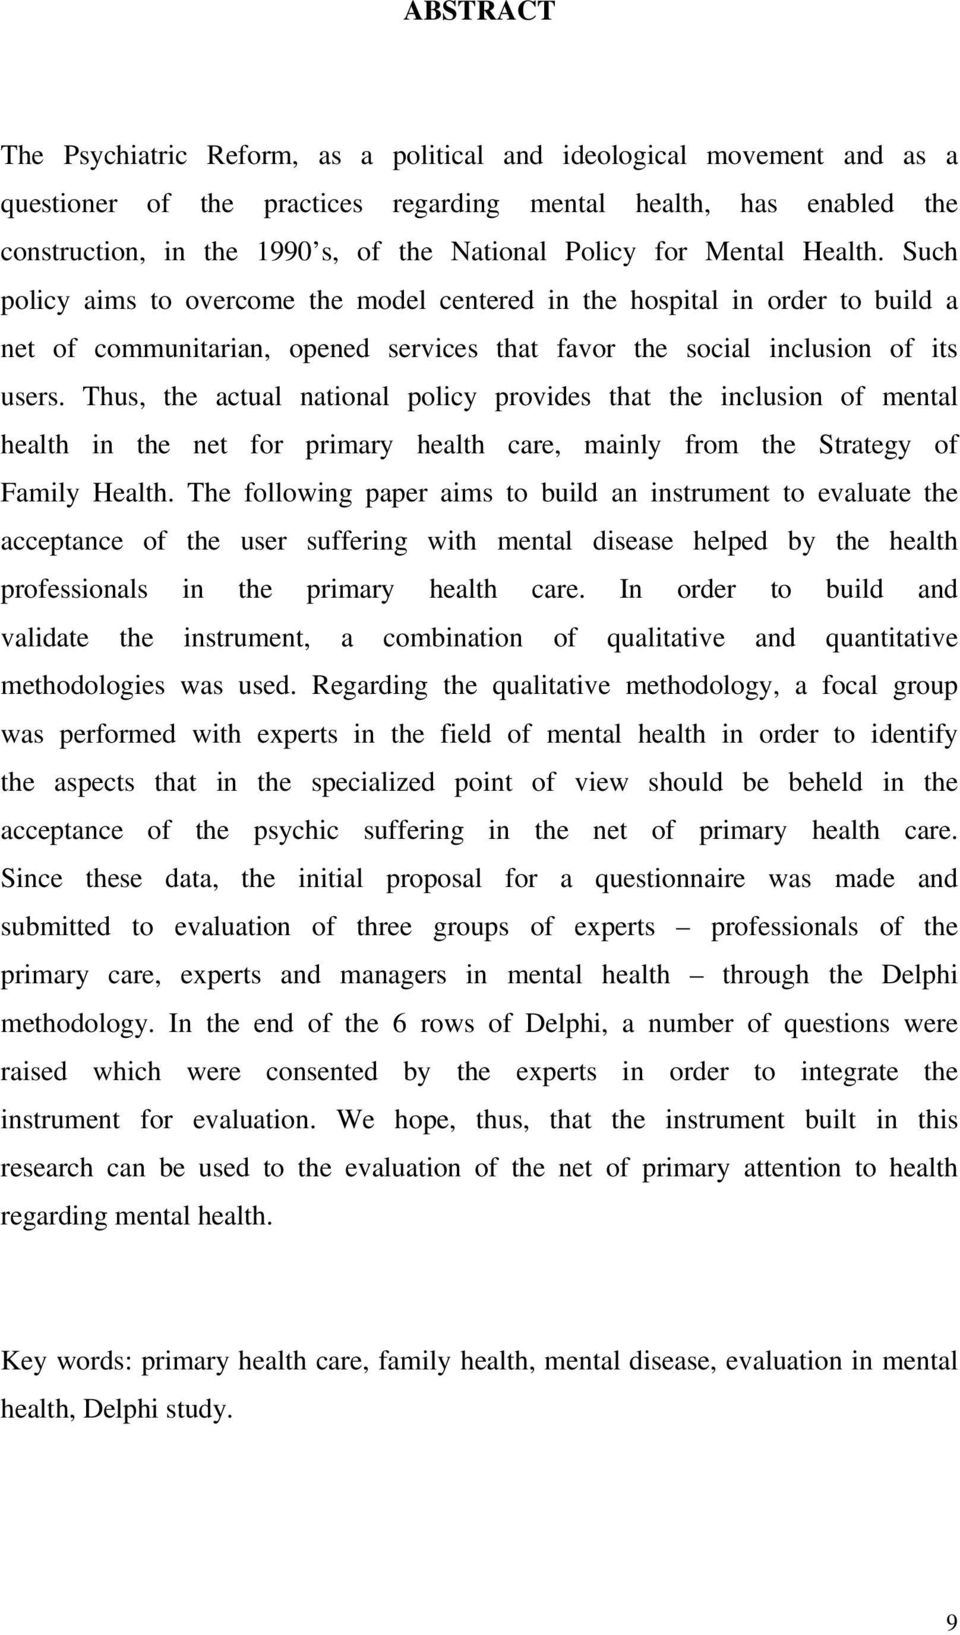 Thus, the actual national policy provides that the inclusion of mental health in the net for primary health care, mainly from the Strategy of Family Health.